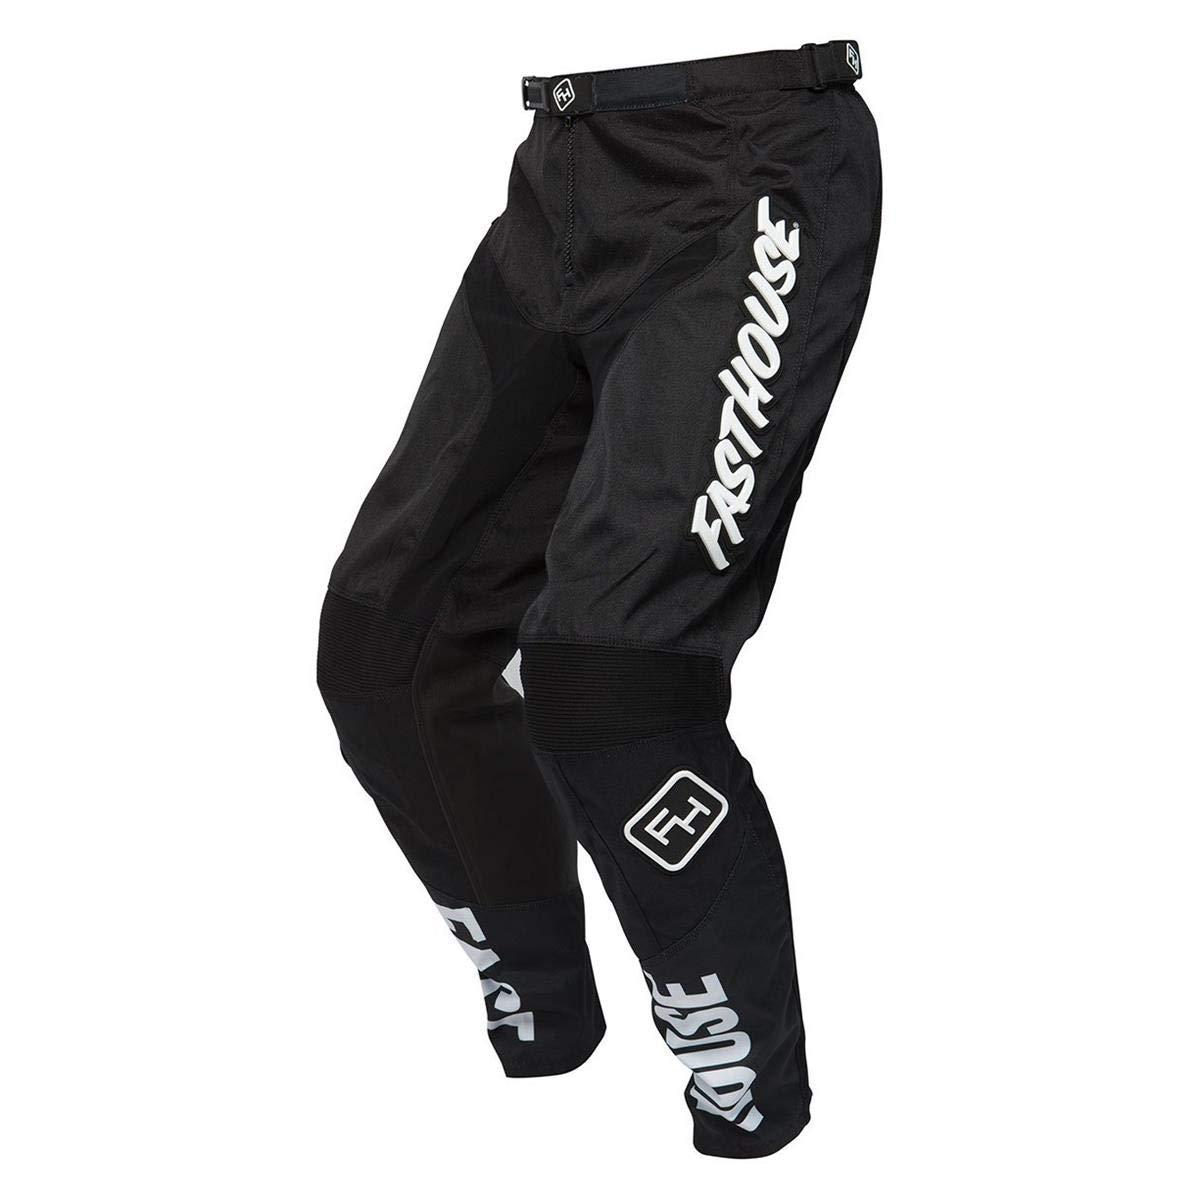 Fasthouse Grindhouse Men's Dirt Bike Motorcycle Pants - Black Size 36